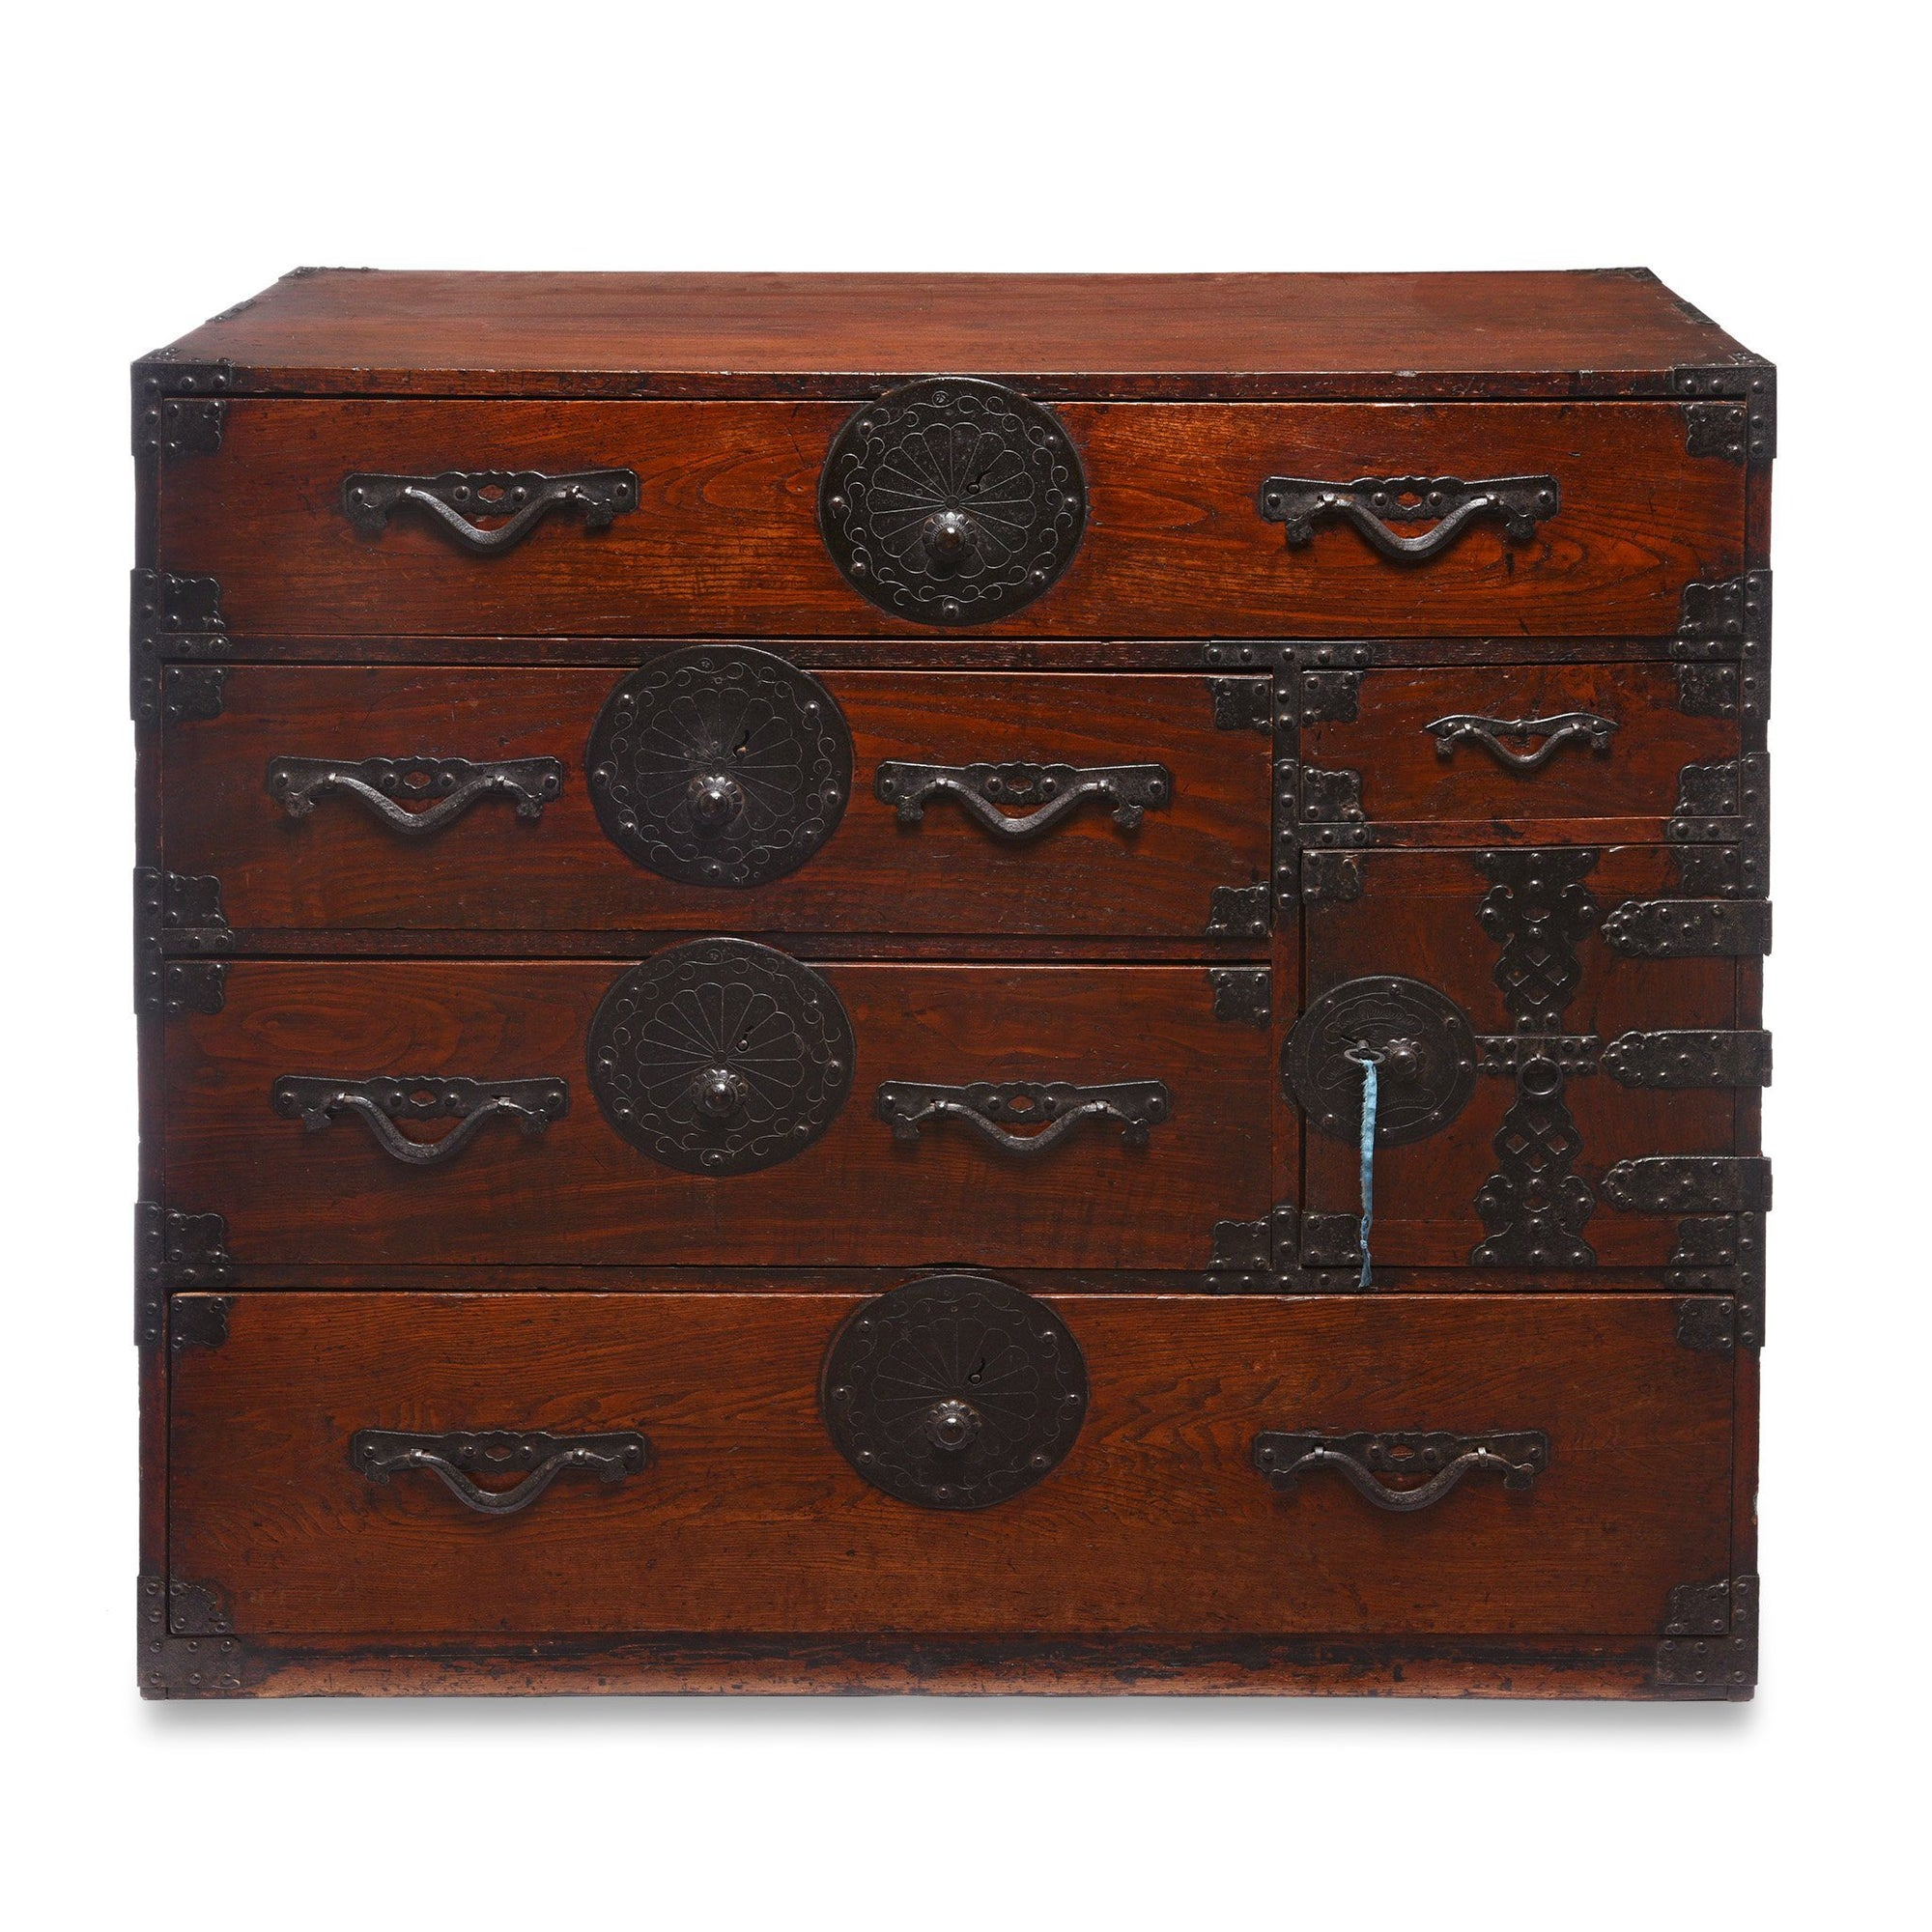 Japanese Side Tansu - Edo Period | Indigo Antiques